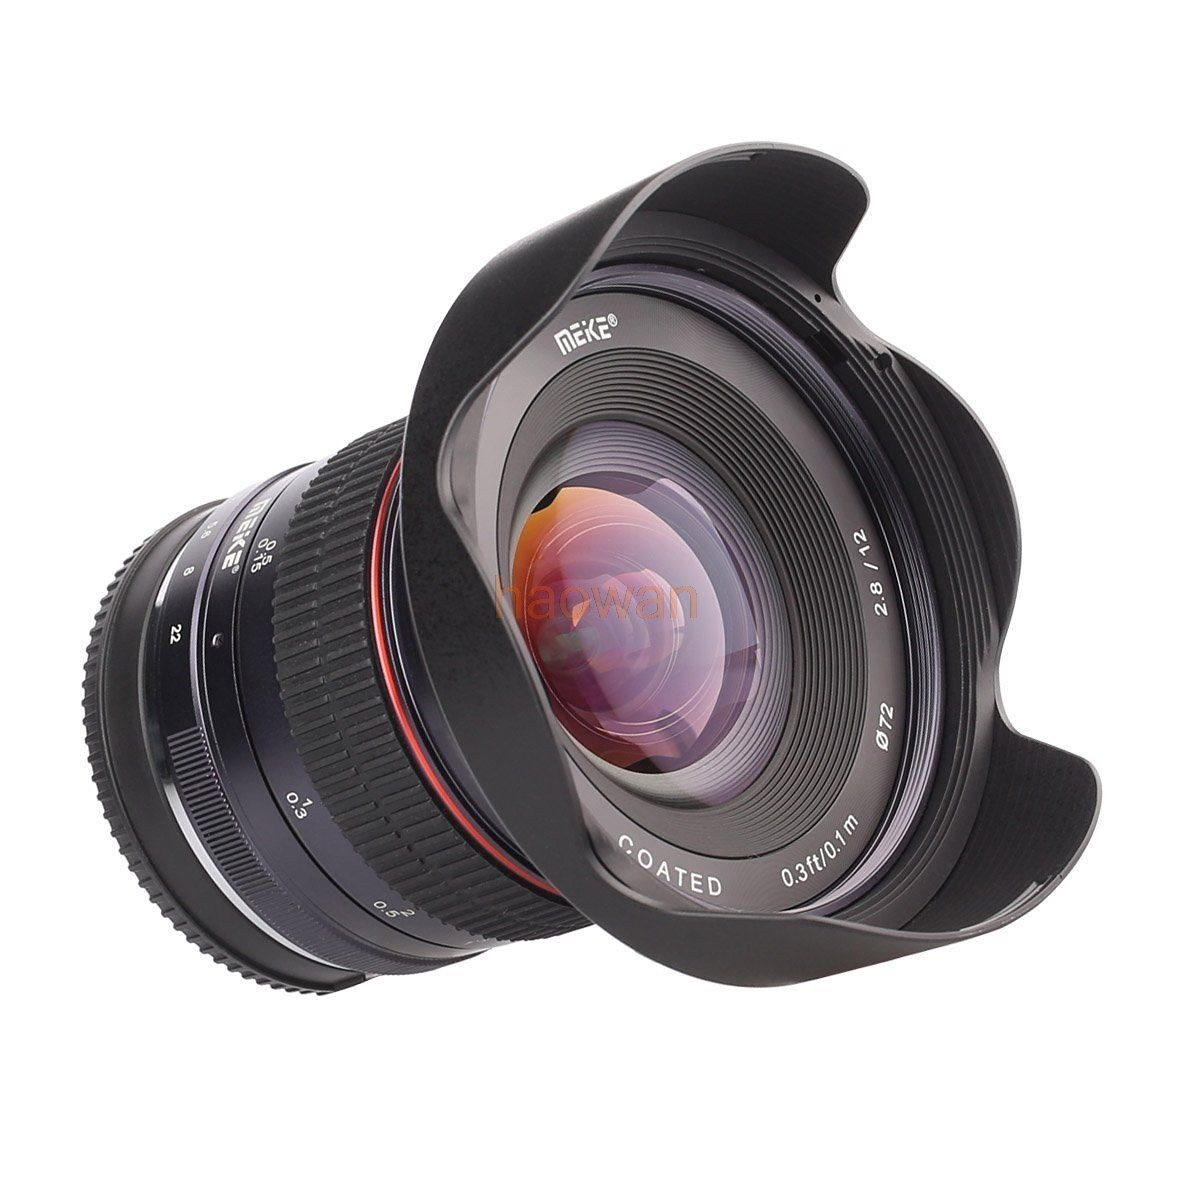 12mm F2.8 f/2.8 Wide Angle manual Fixed Lens for canon ef-m eosm/m3/m5/m10 mirrorless camera